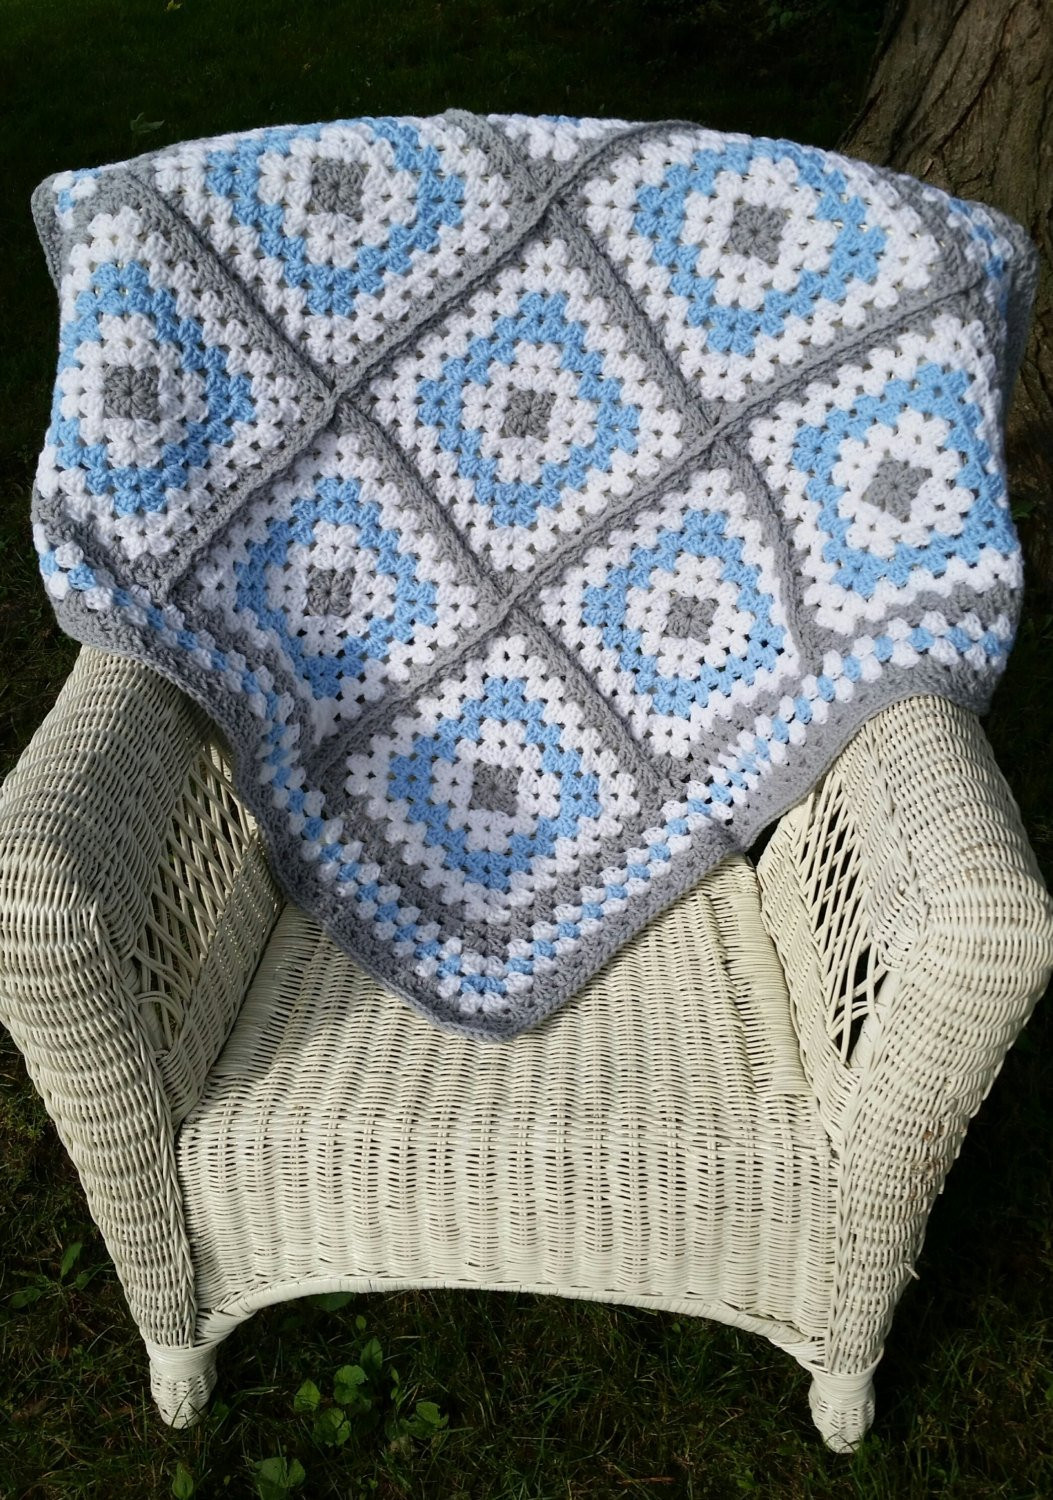 New Blue and Grey Granny Square Baby Blanket Crochet Baby Granny Square Baby Blanket Of Amazing 41 Pictures Granny Square Baby Blanket